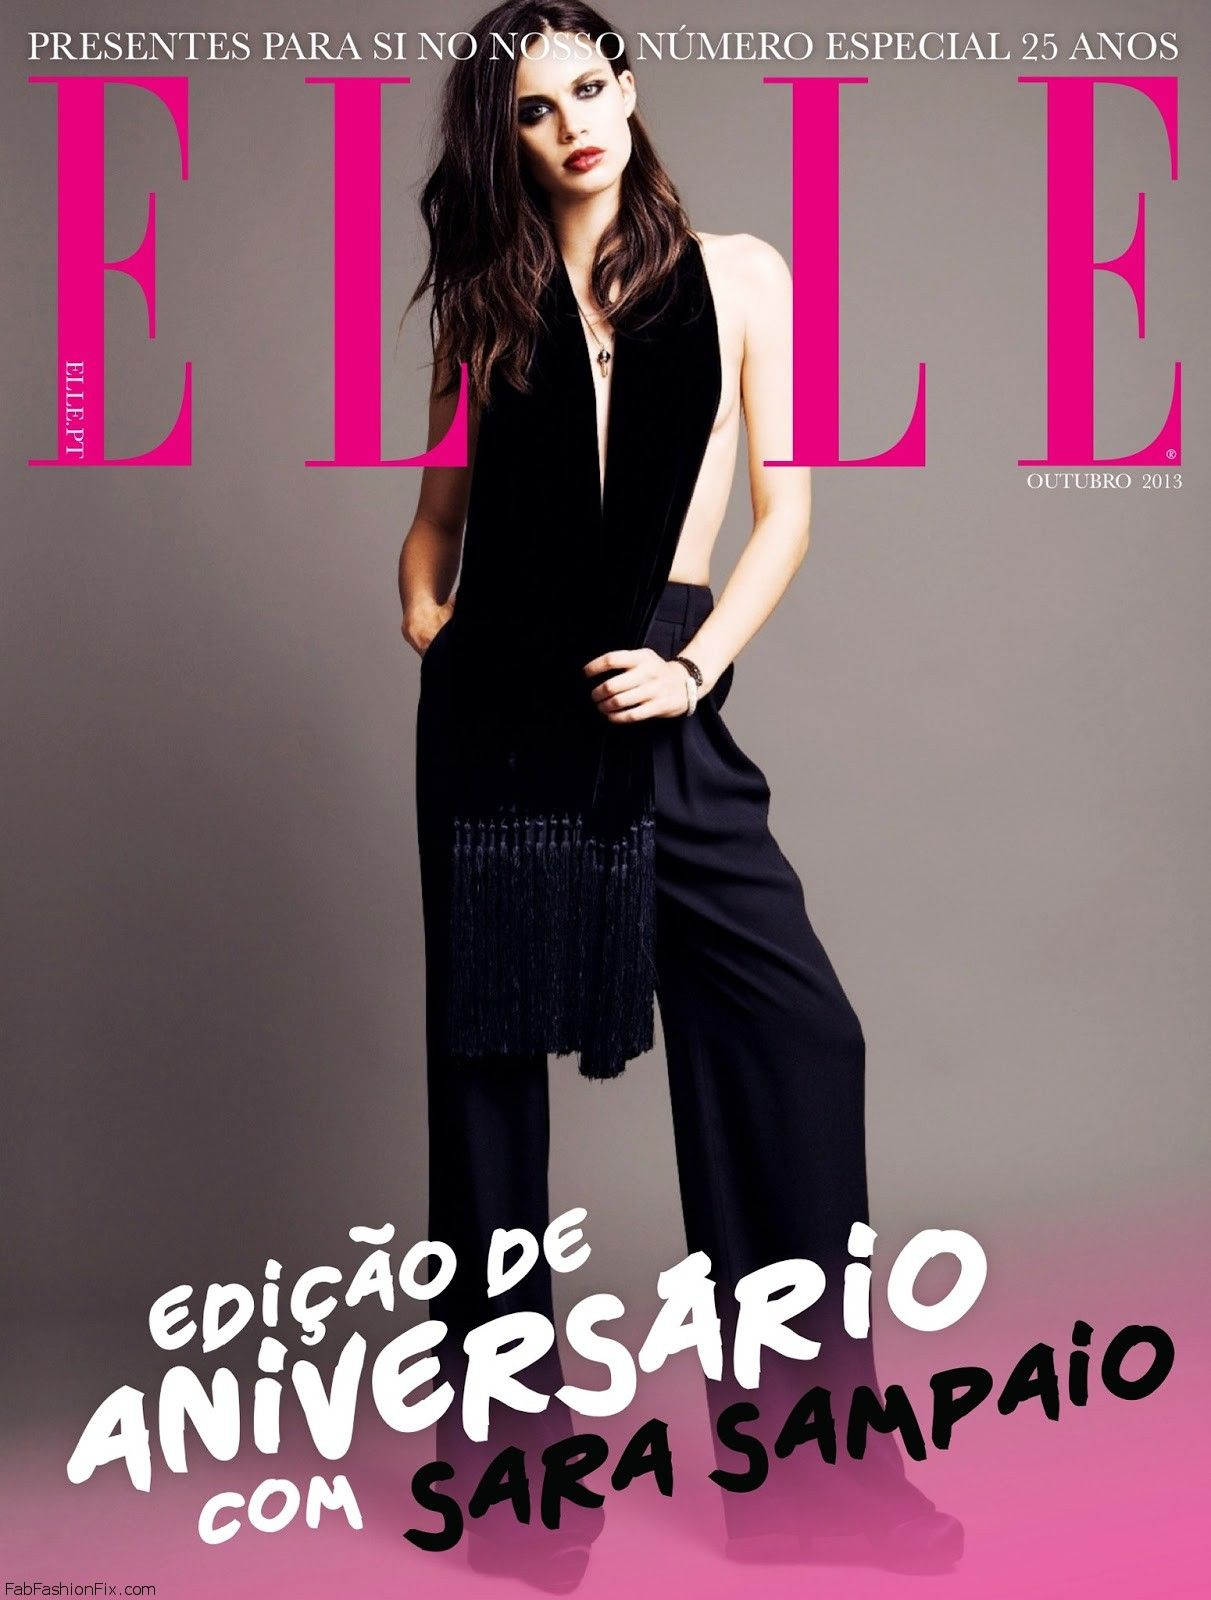 fashion_scans_remastered-sara_sampaio-elle_portugal-october_2013-scanned_by_vampirehorde-hq-3